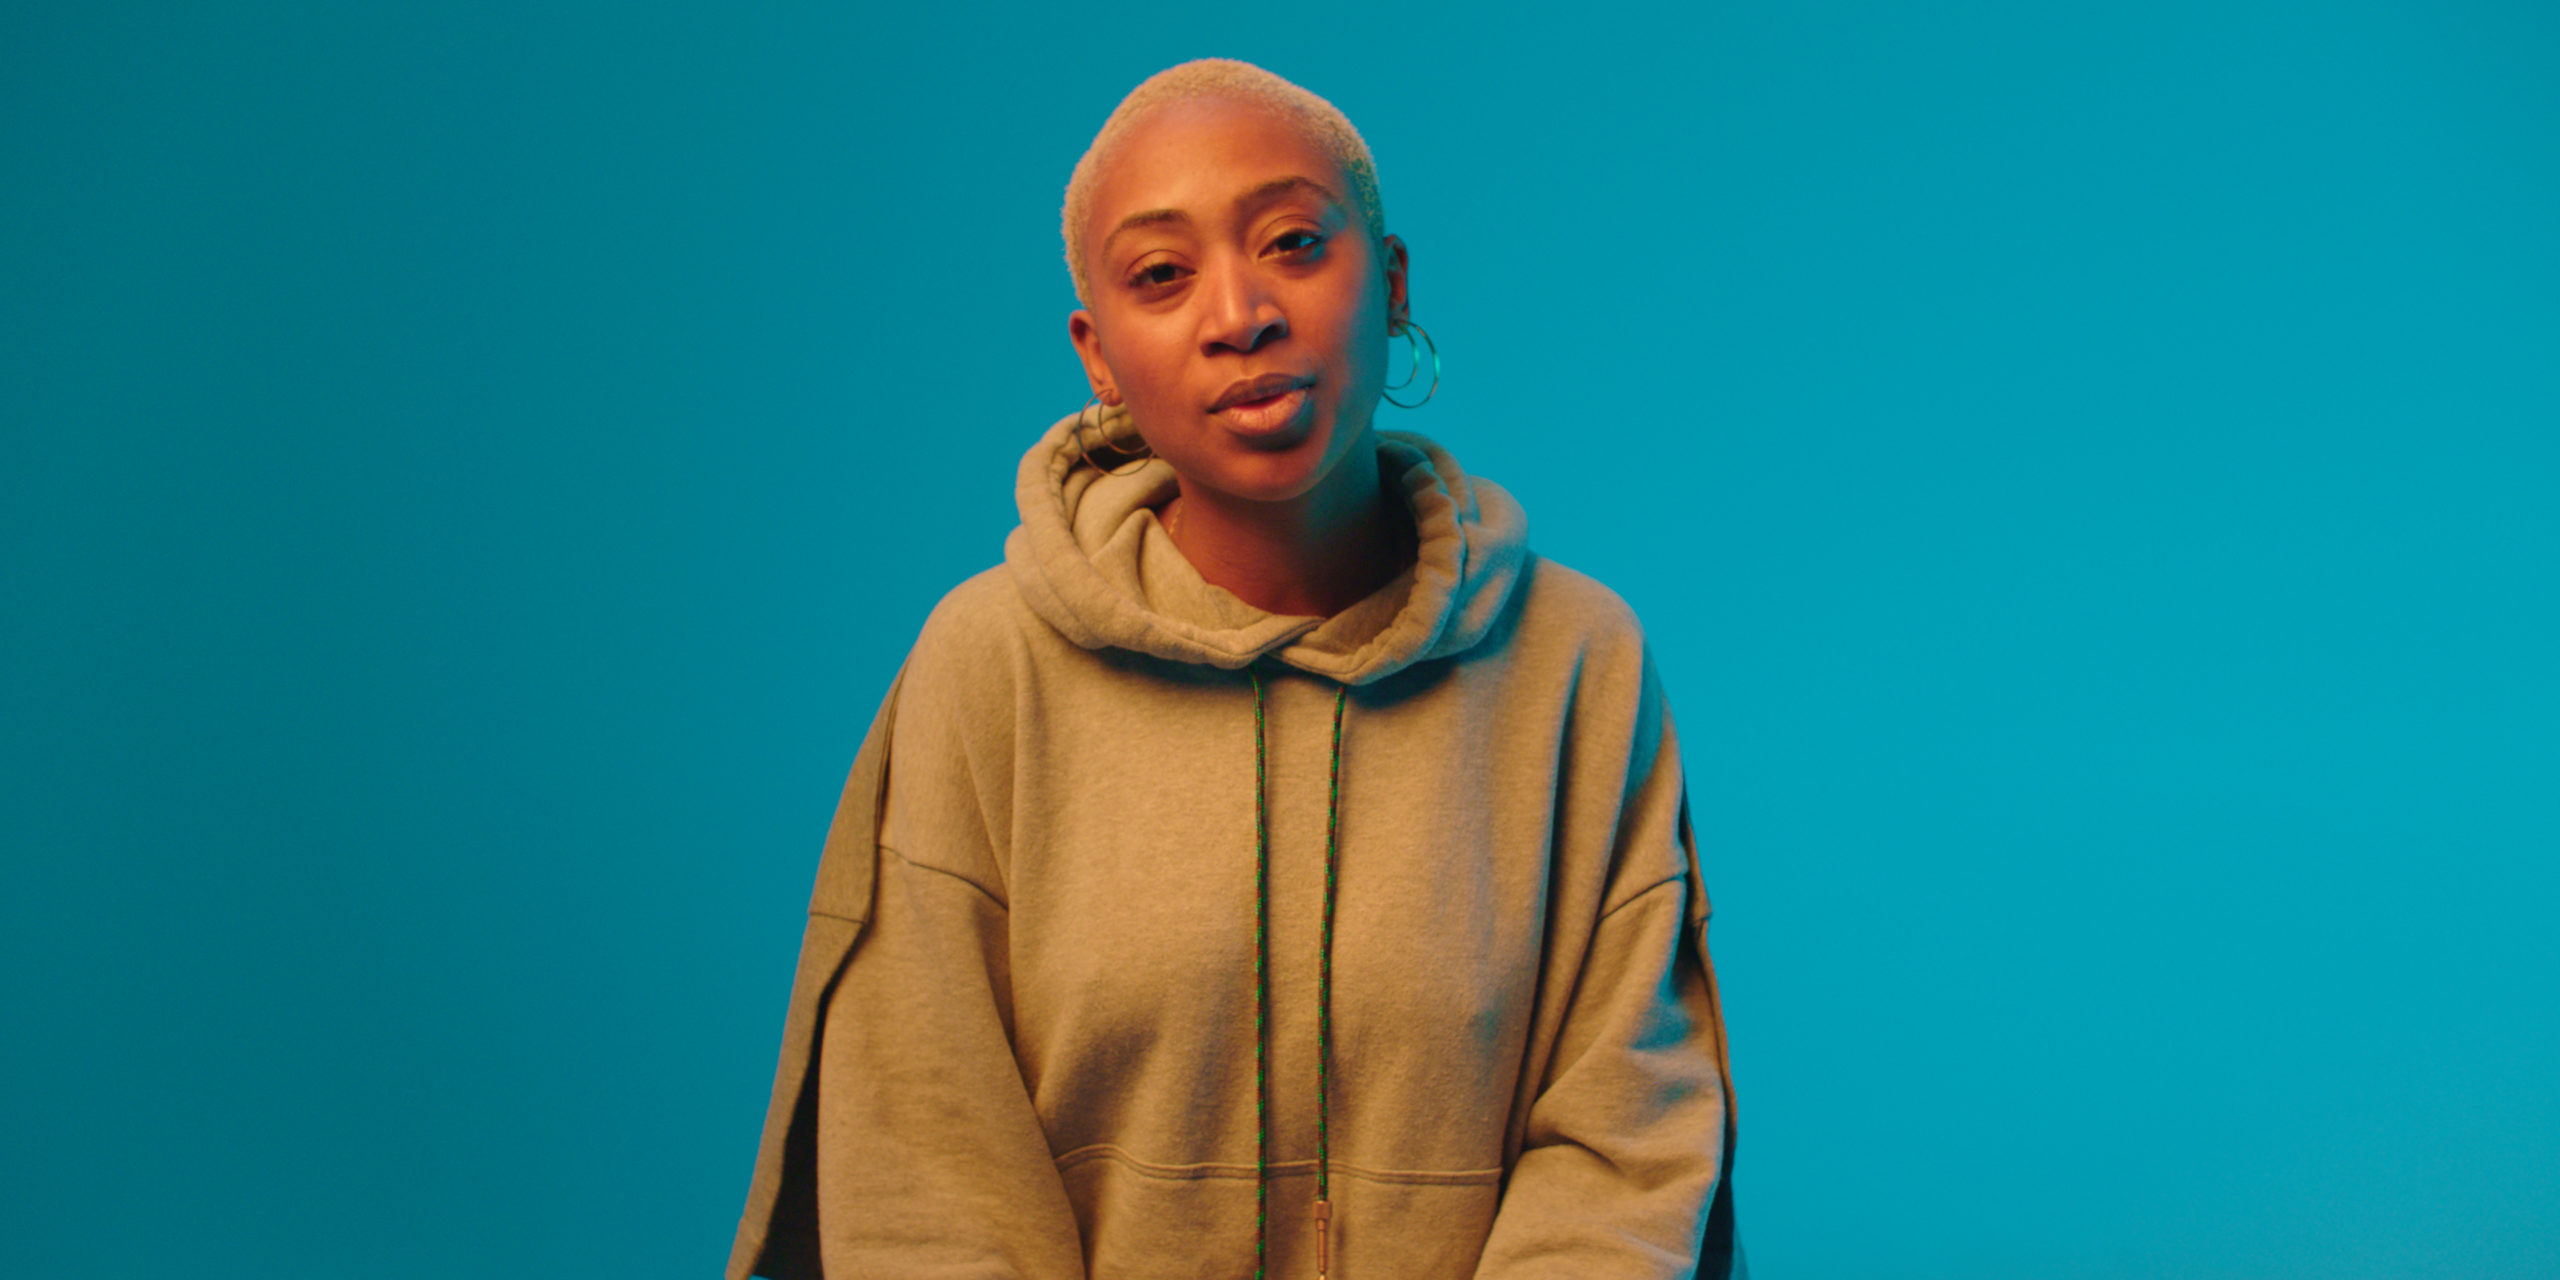 Charlene Prempeh, founder of A Vibe Called Tech, is in front of a blue background.